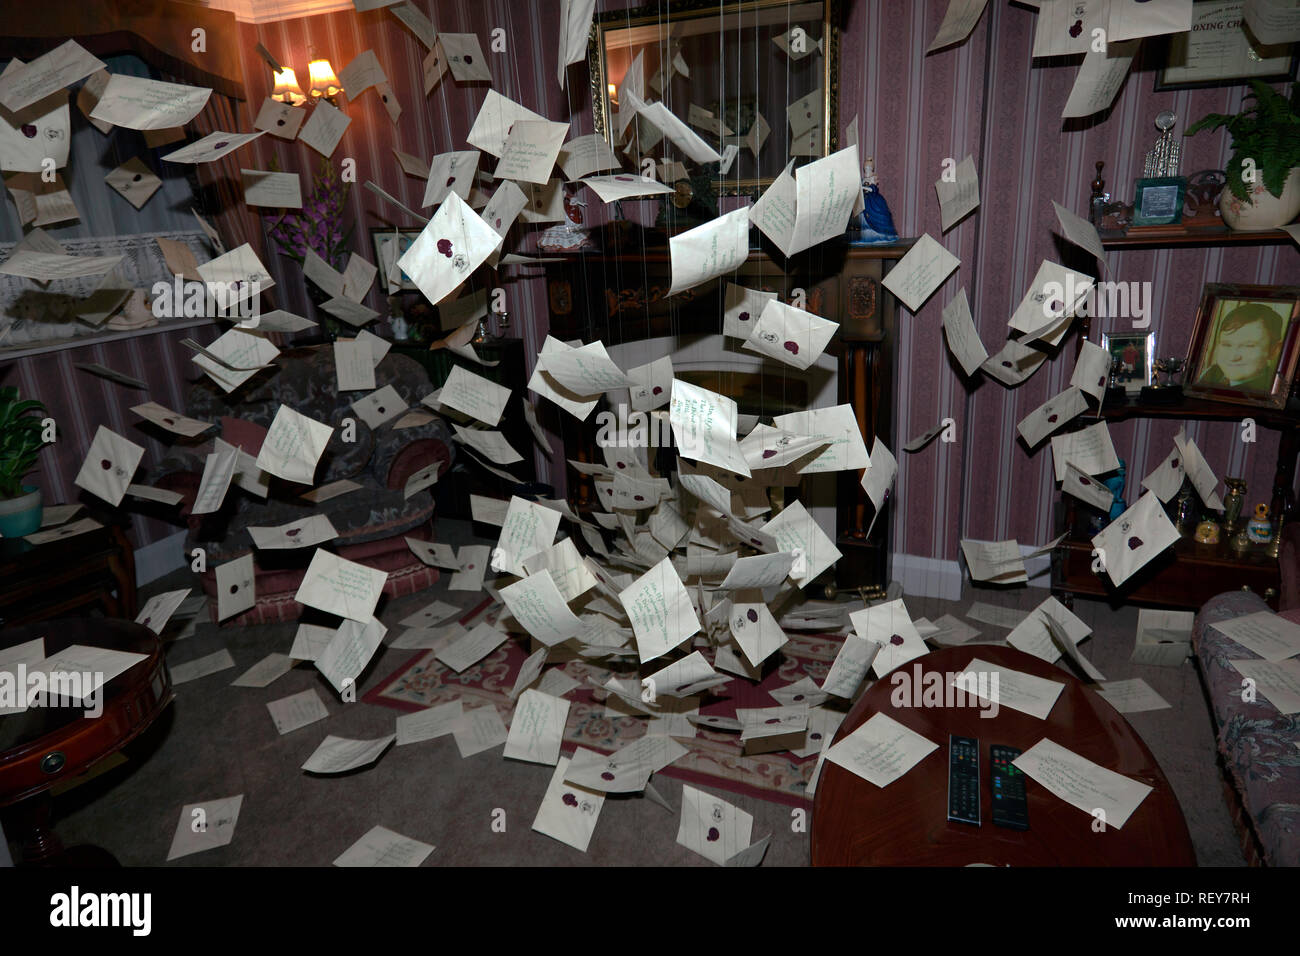 Harry Potter Wohnzimmer Hogwarts Brief Stockfotos Hogwarts Brief Bilder Alamy